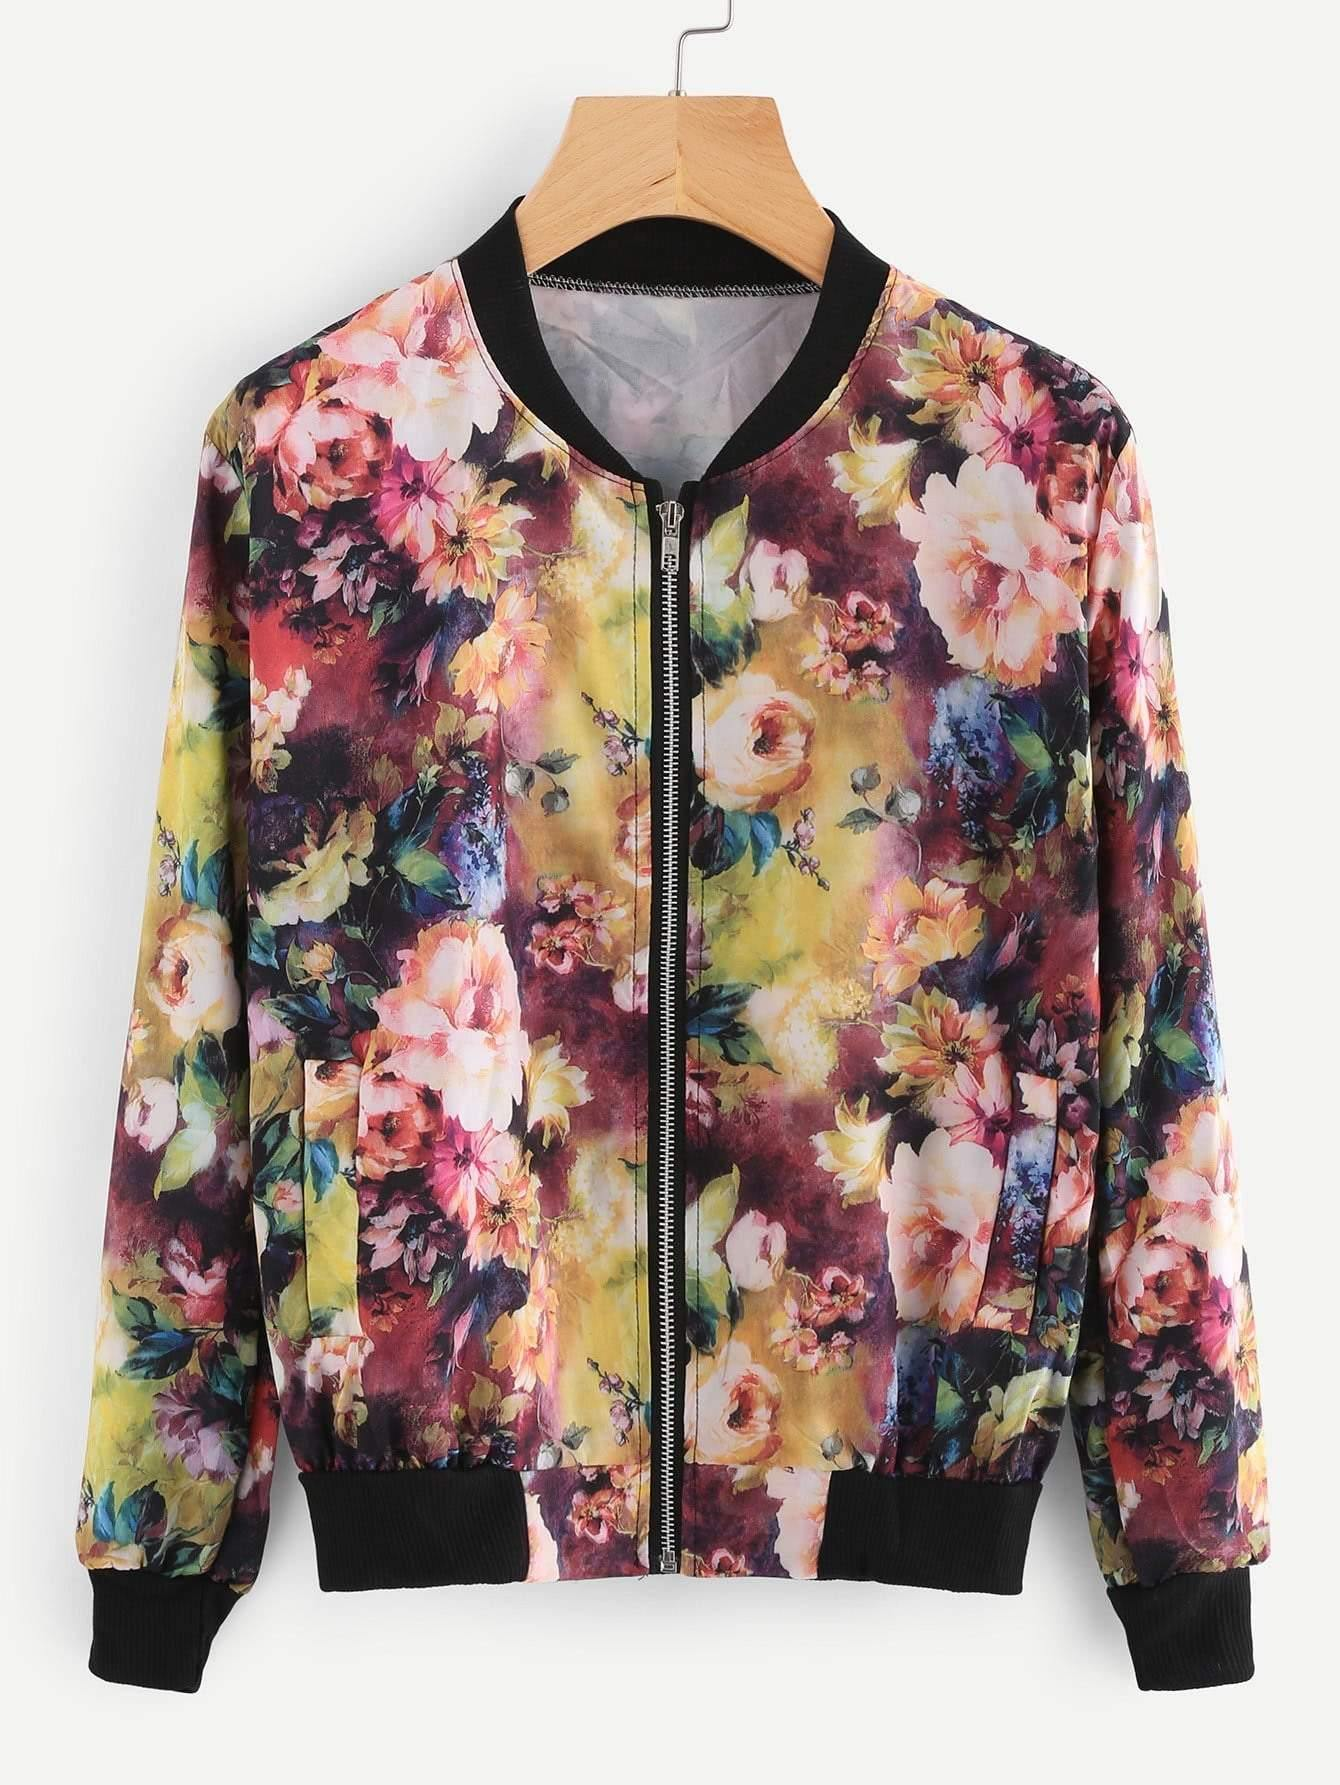 Contrast Ribbed Trim Florals Jacket - Jackets - Zooomberg - Zoomberg